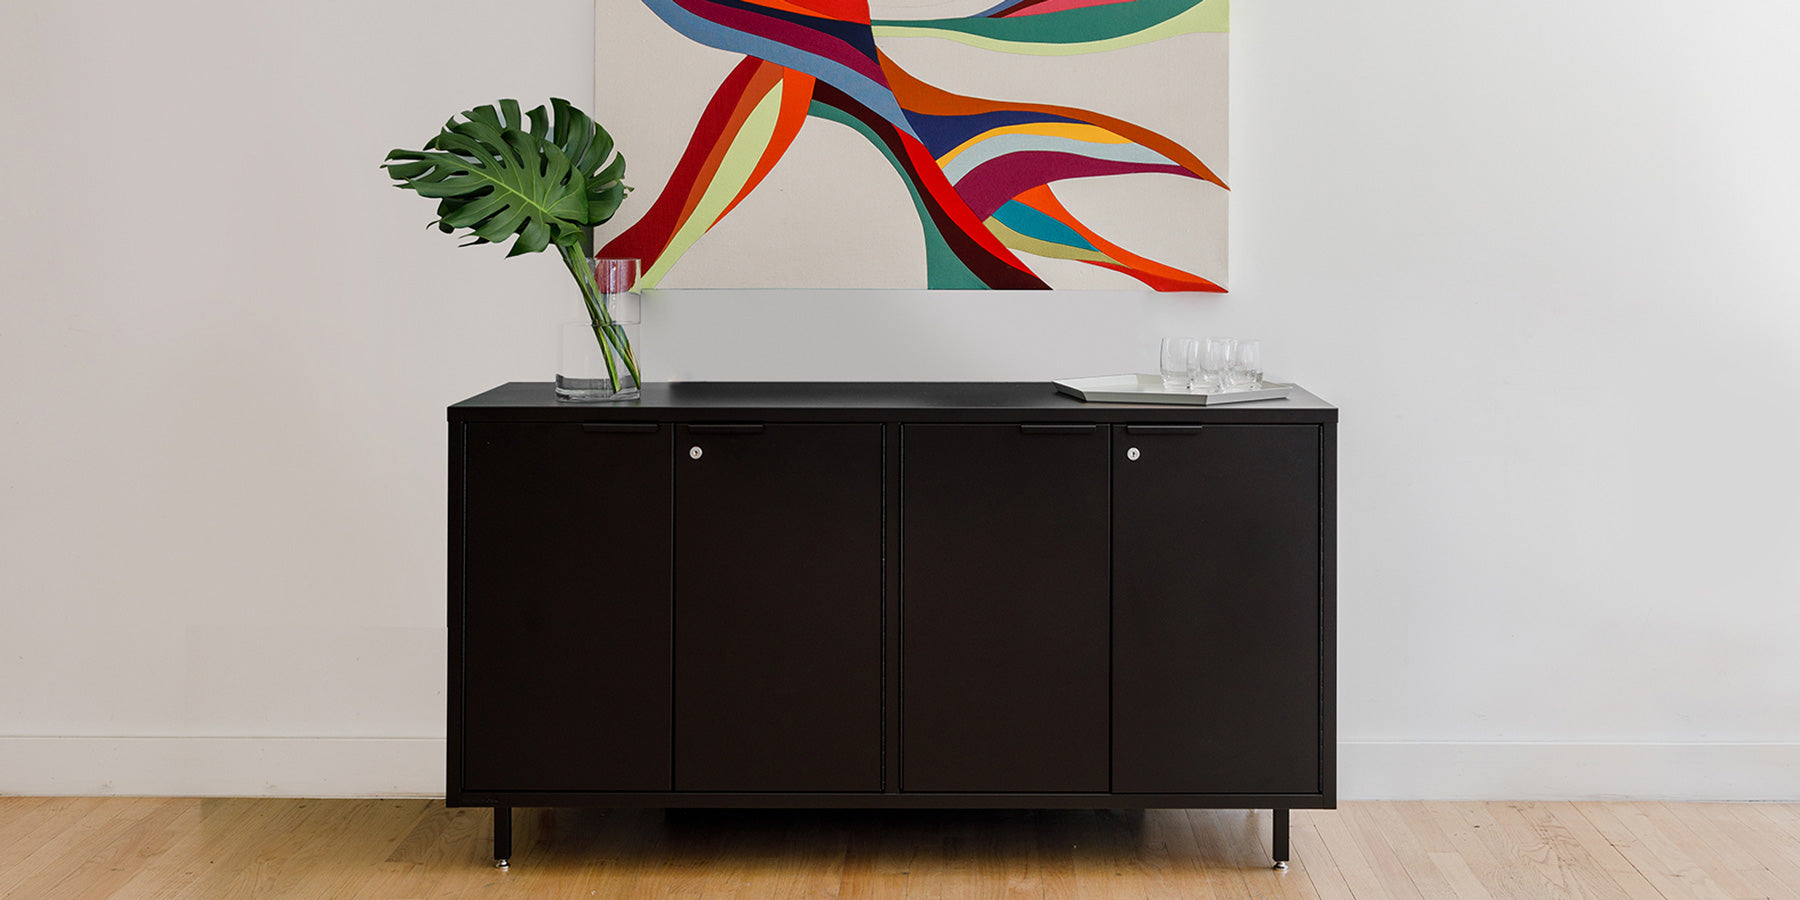 Heartwork Active Duty storage credenza in black against white wall with a painting in the background